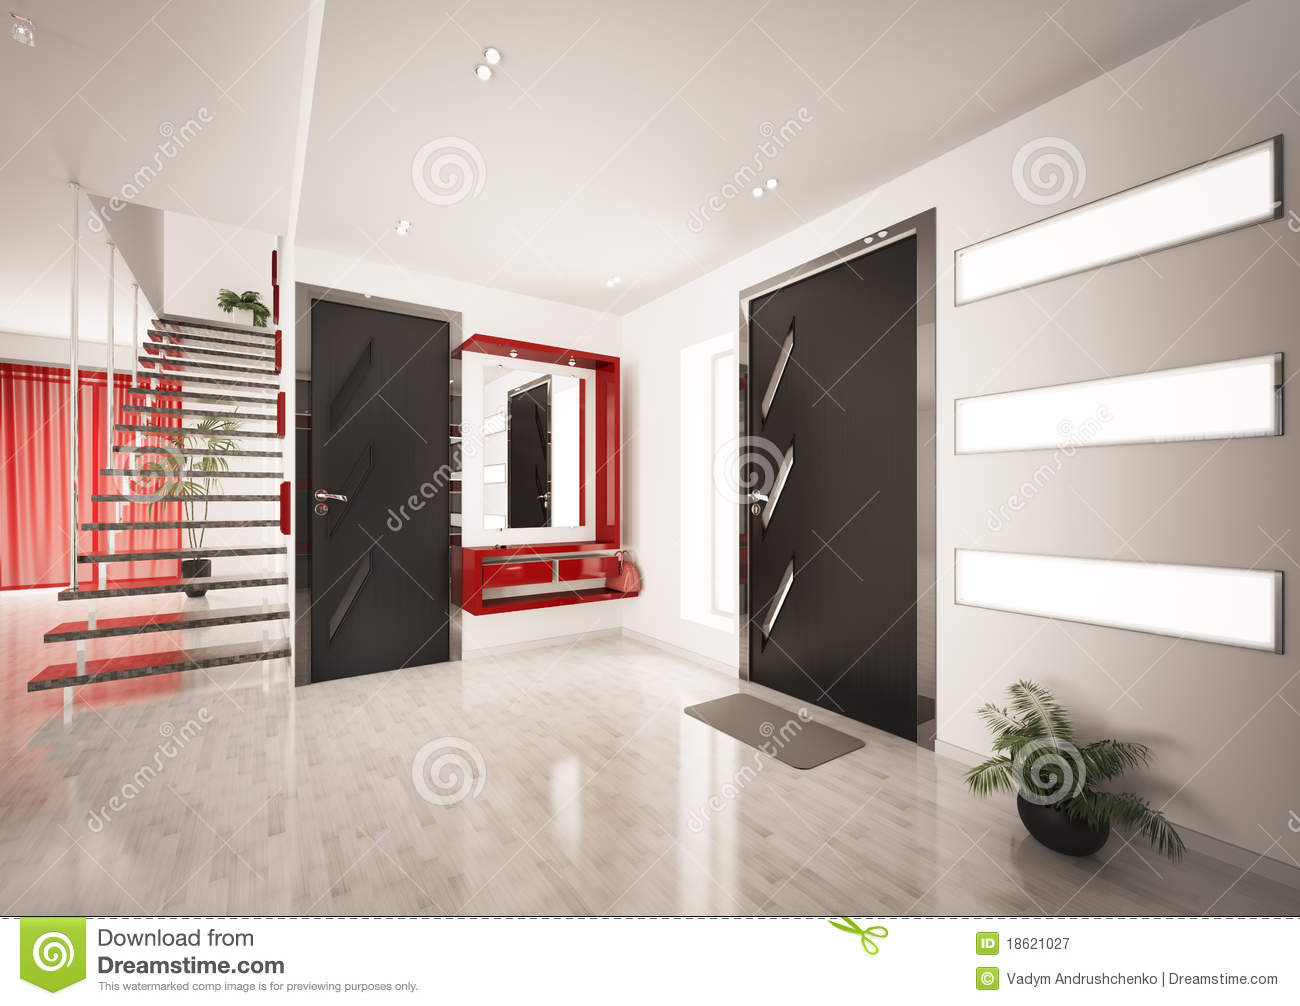 Modern Interior Of Hall With Staircase 3d Render Stock ...